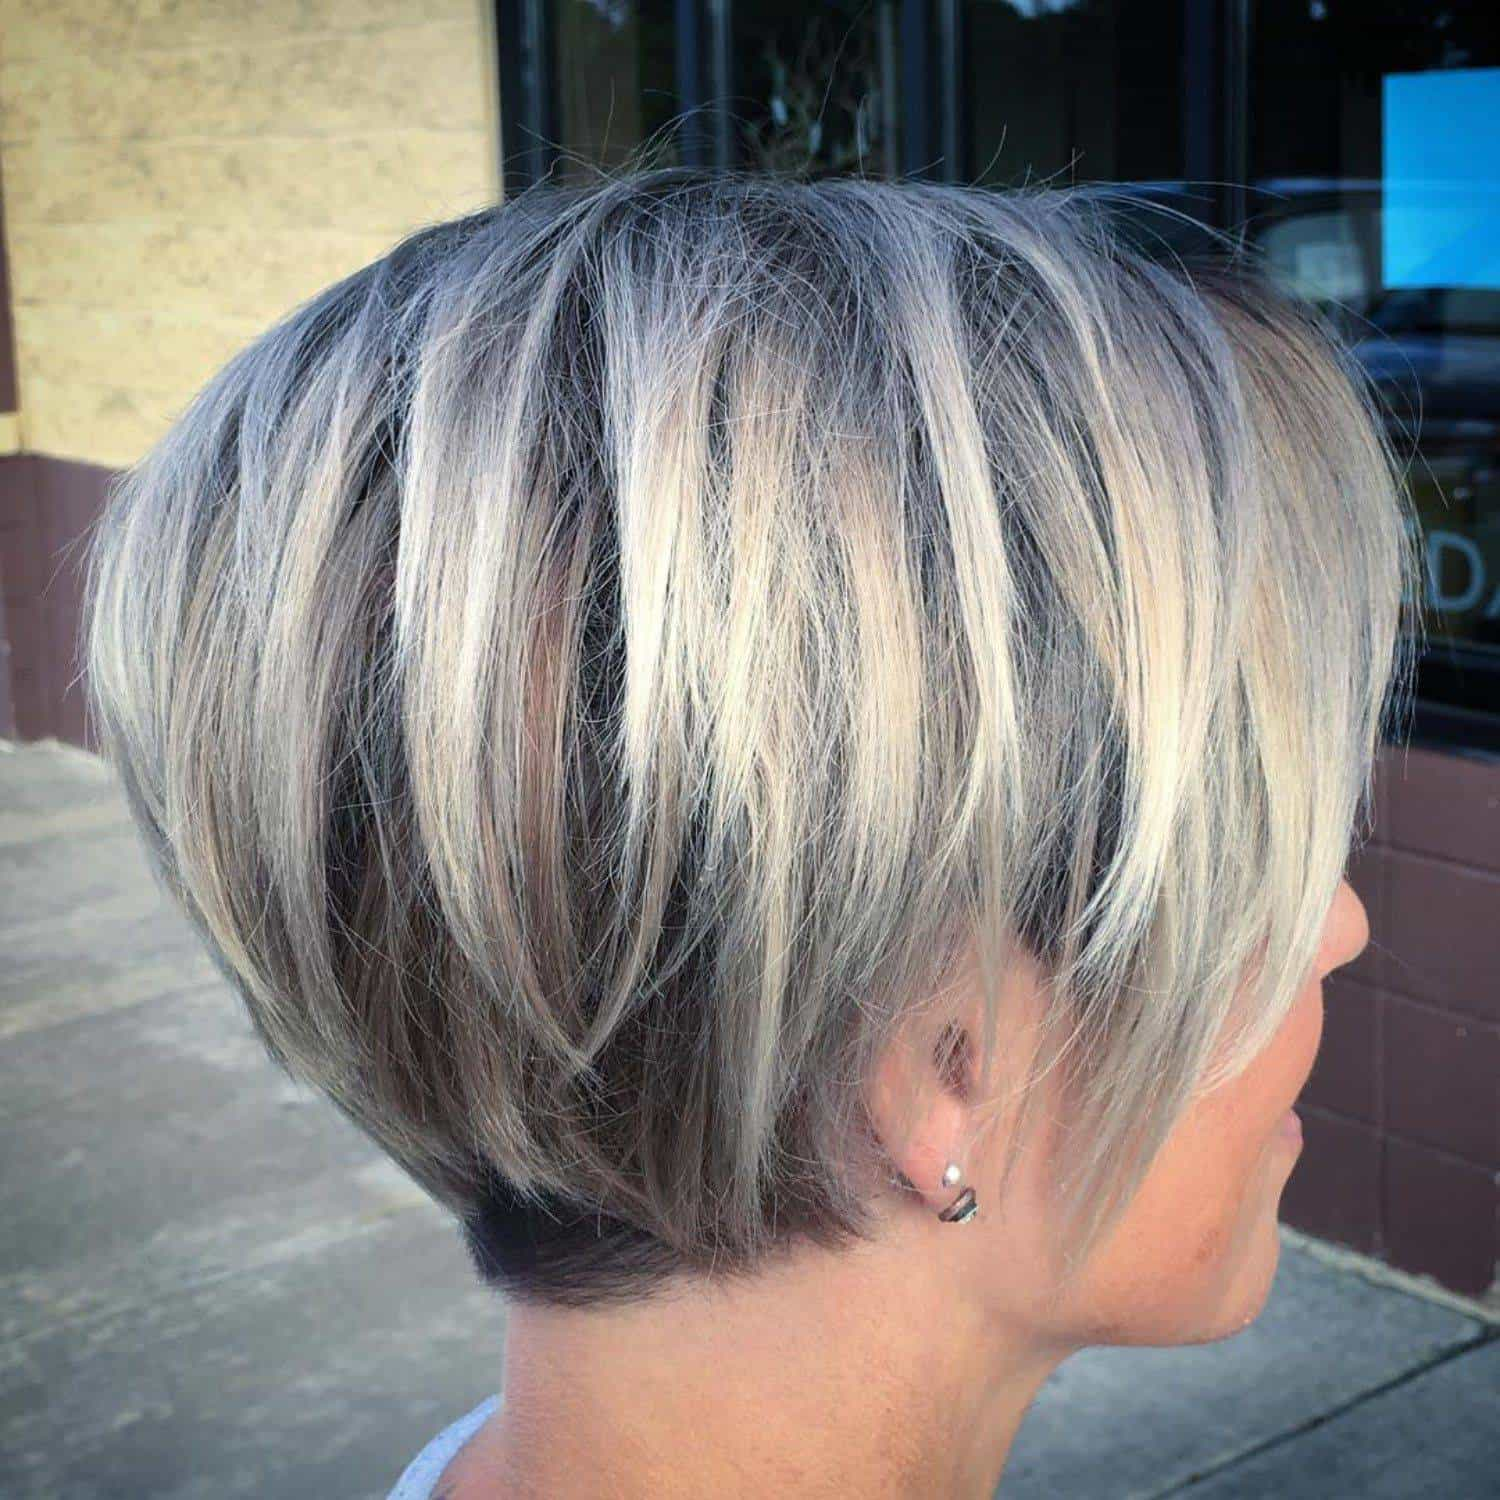 20-best-short-hairdos-for-women-over-60-will-knock-20-years-off_15